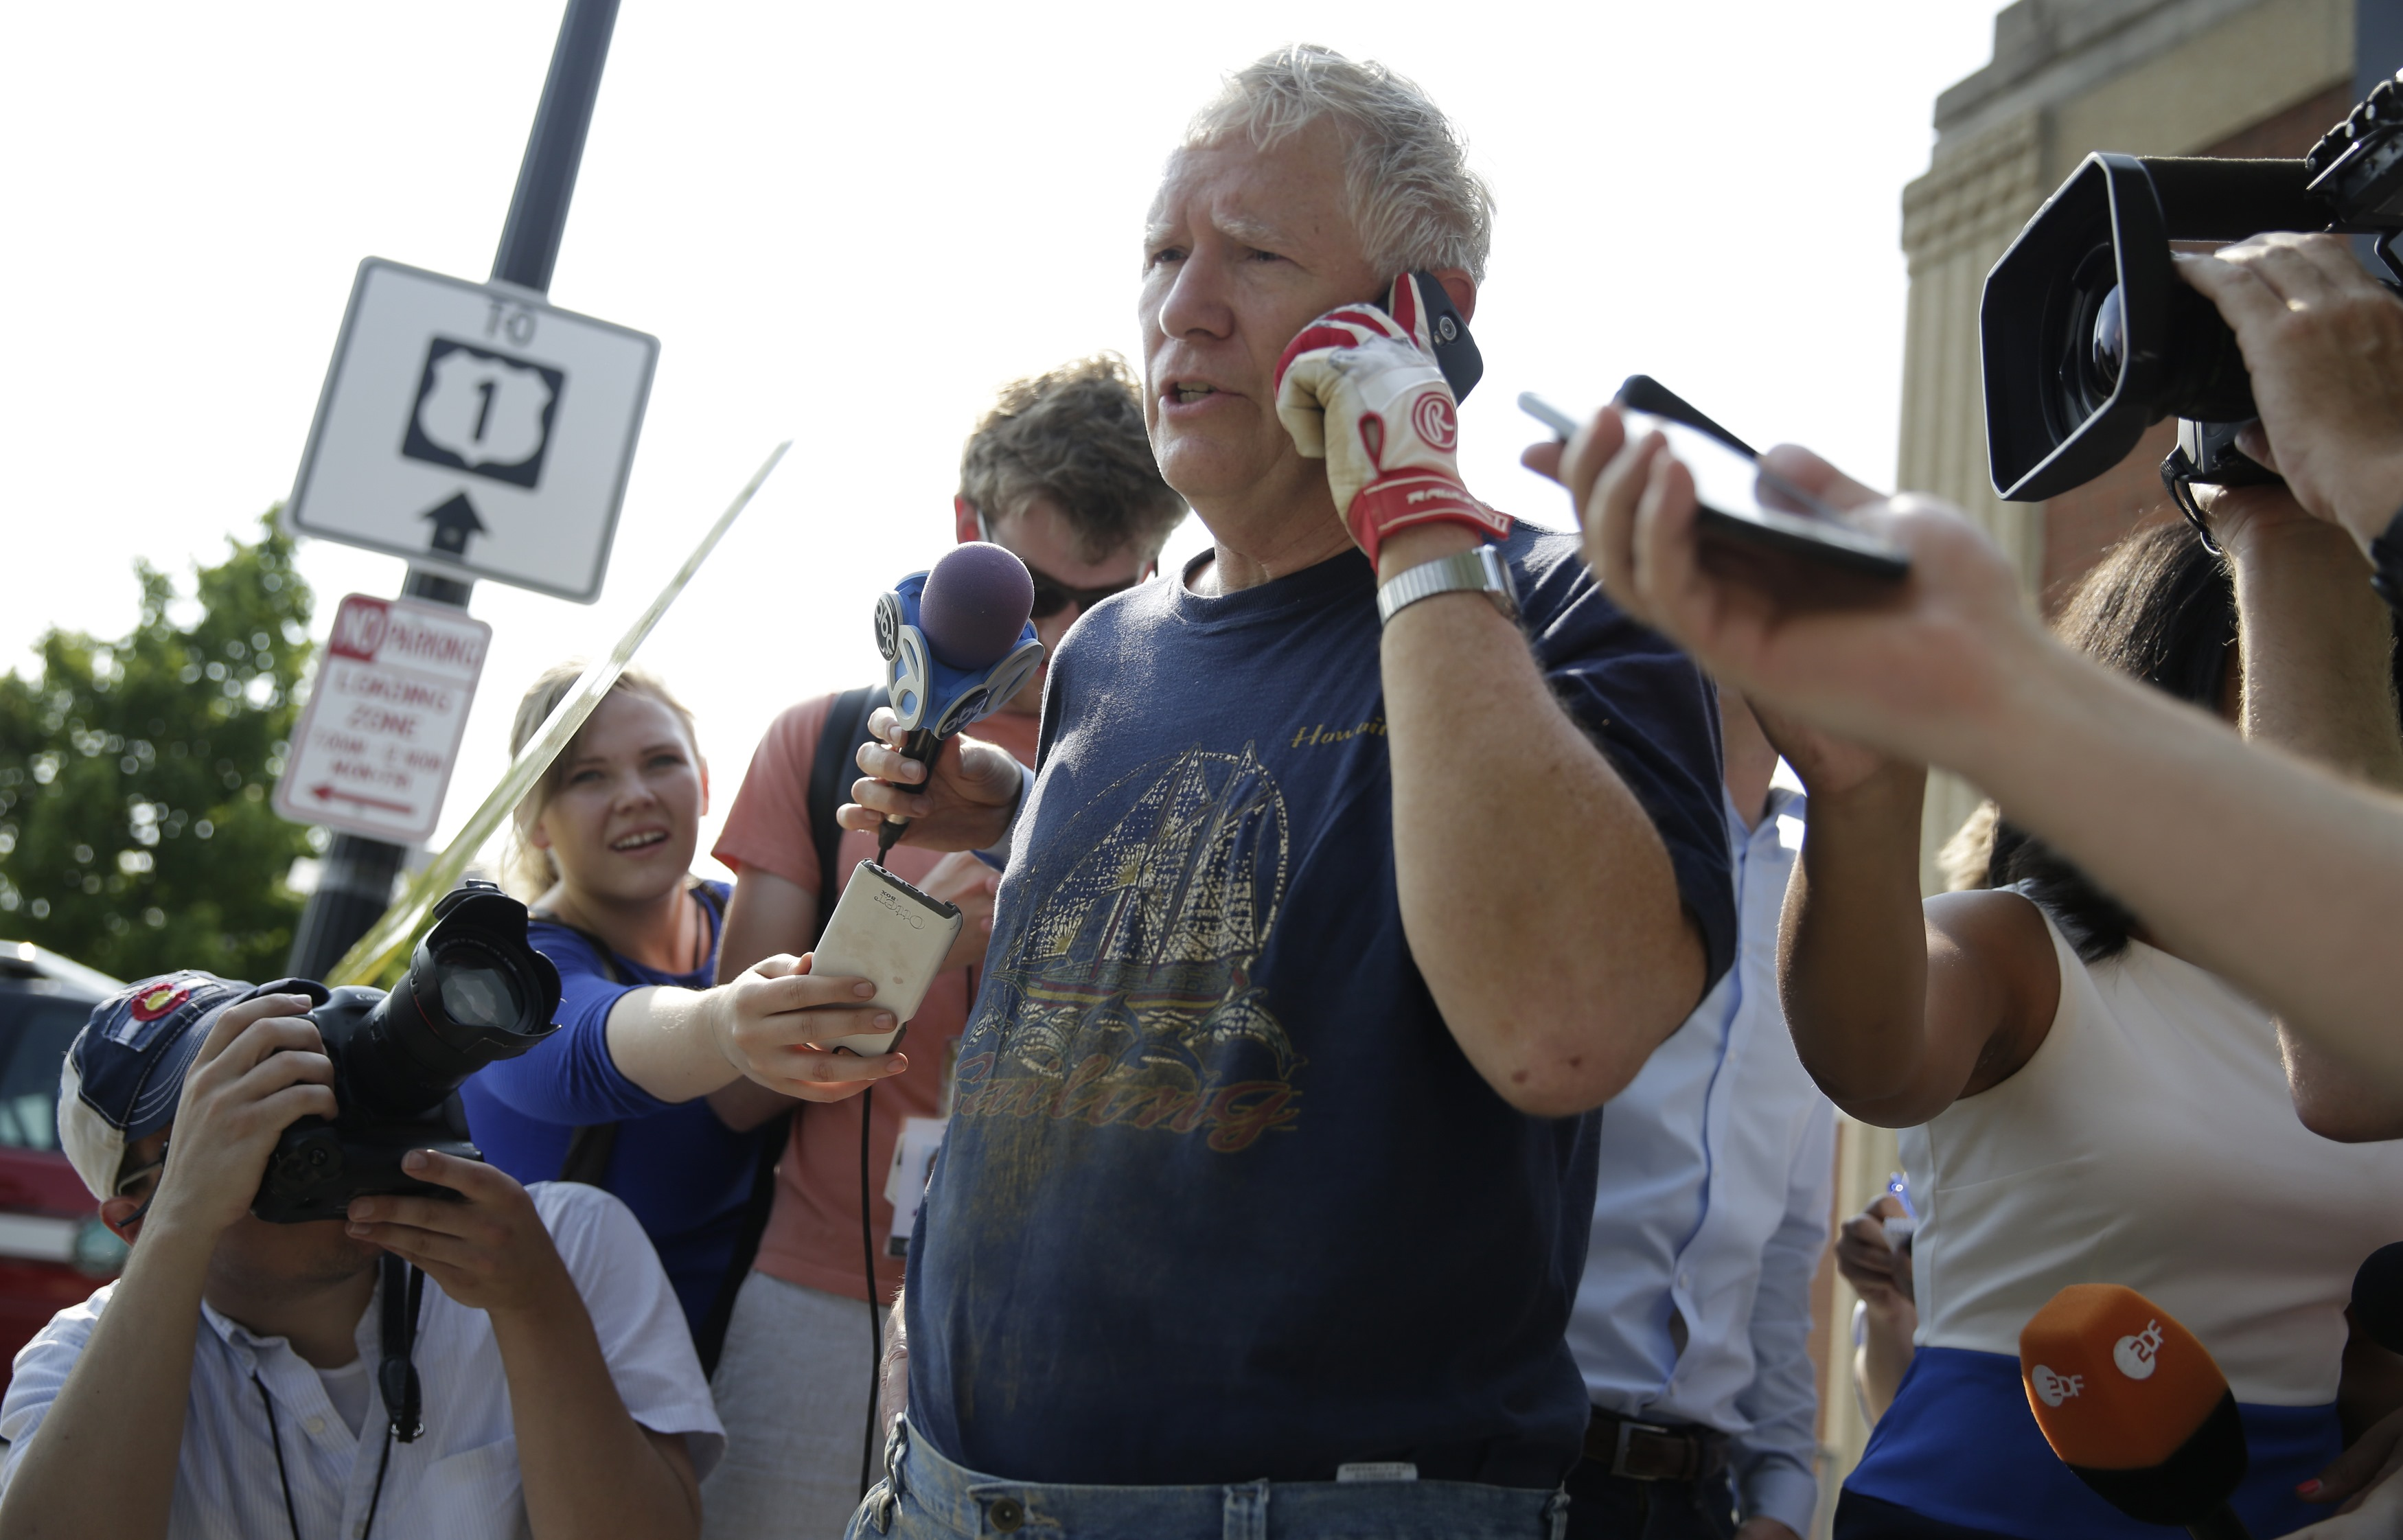 Rep. Mo Brooks (R-AL) talks to reporters  after a gunman opened fire on Republican members of Congress during a baseball practice near Washington in Alexandria, Virginia on June 14, 2017. (REUTERS/Joshua Roberts)